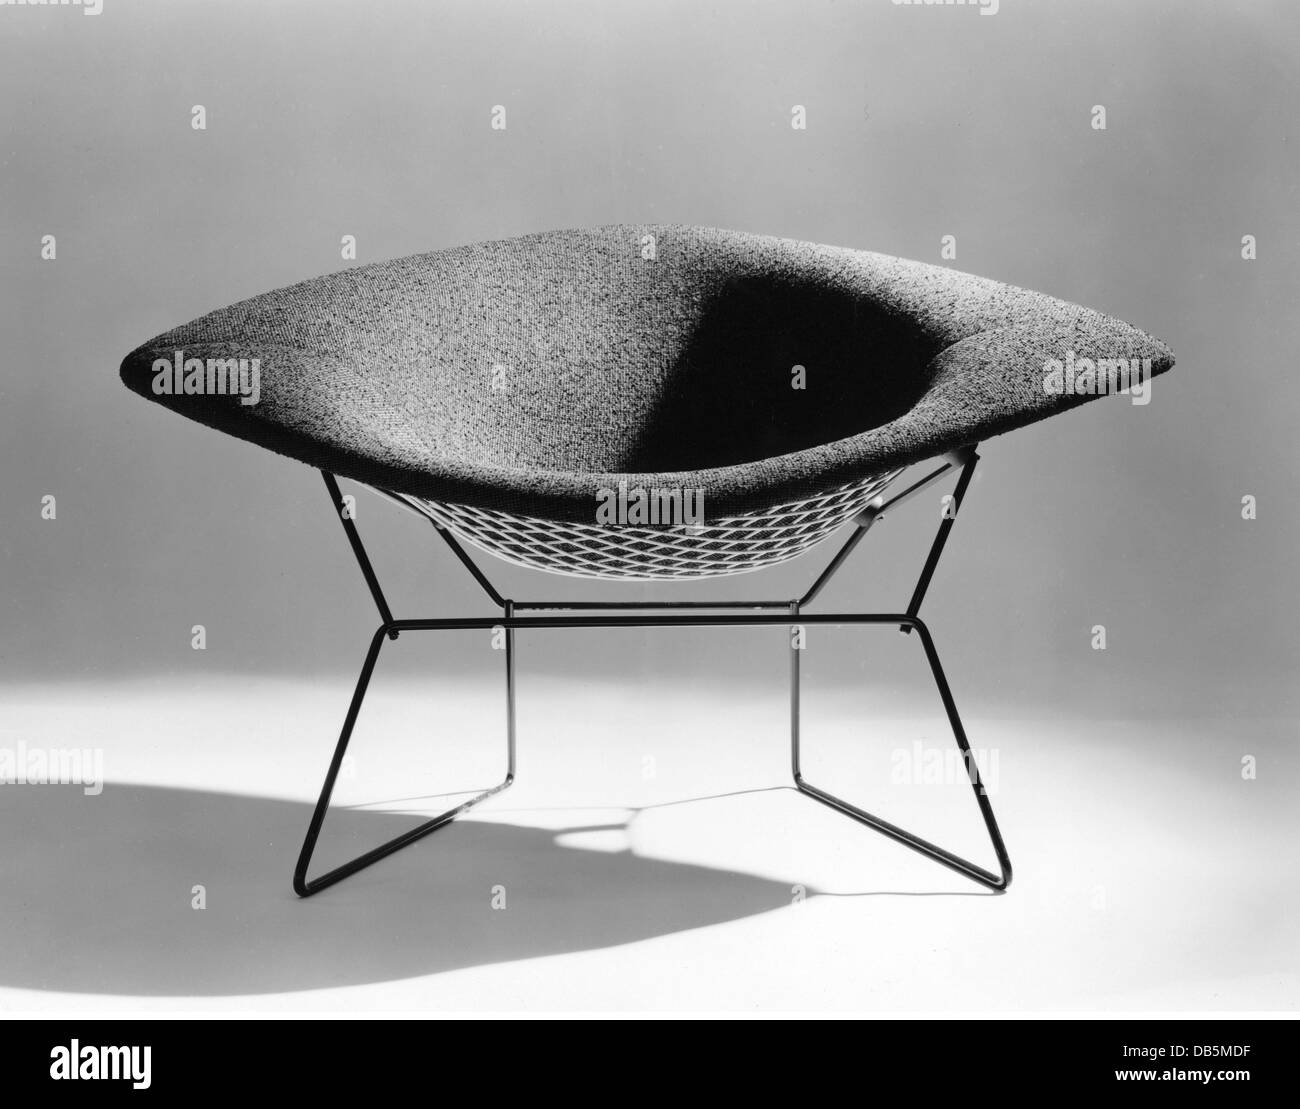 harry bertoia chair photos harry bertoia chair images alamy. Black Bedroom Furniture Sets. Home Design Ideas